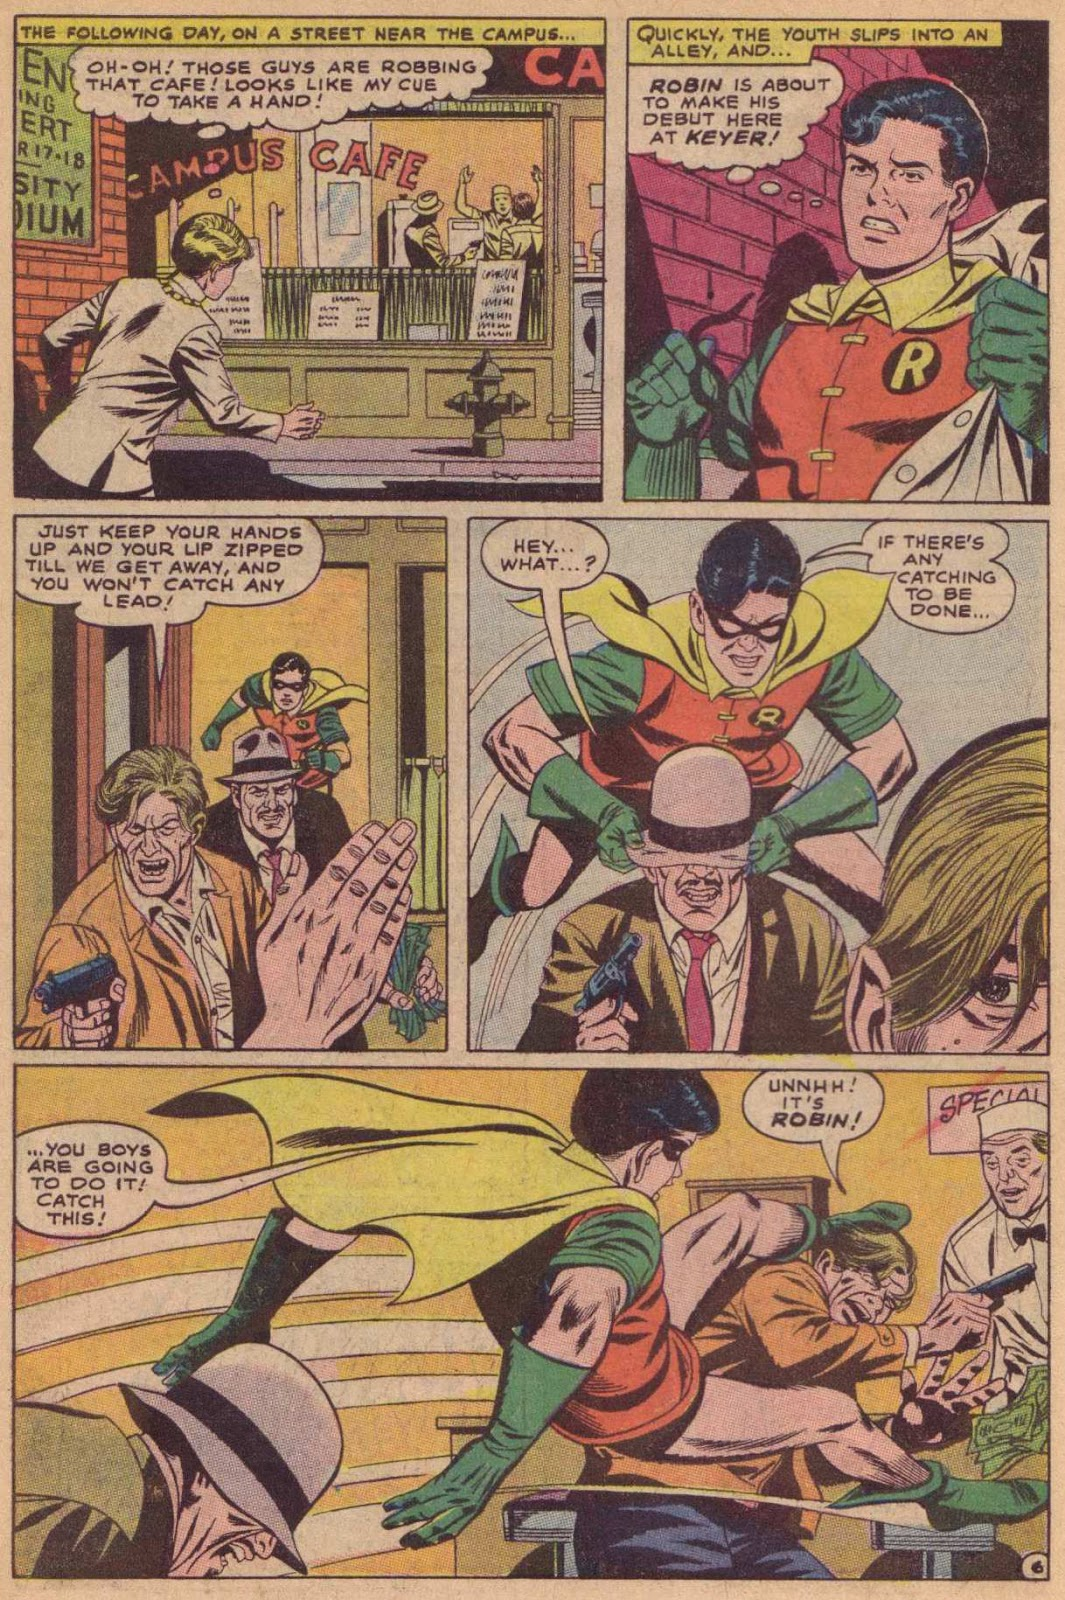 World S Finest Comics Issue 184 Read Full Comics Online For Free